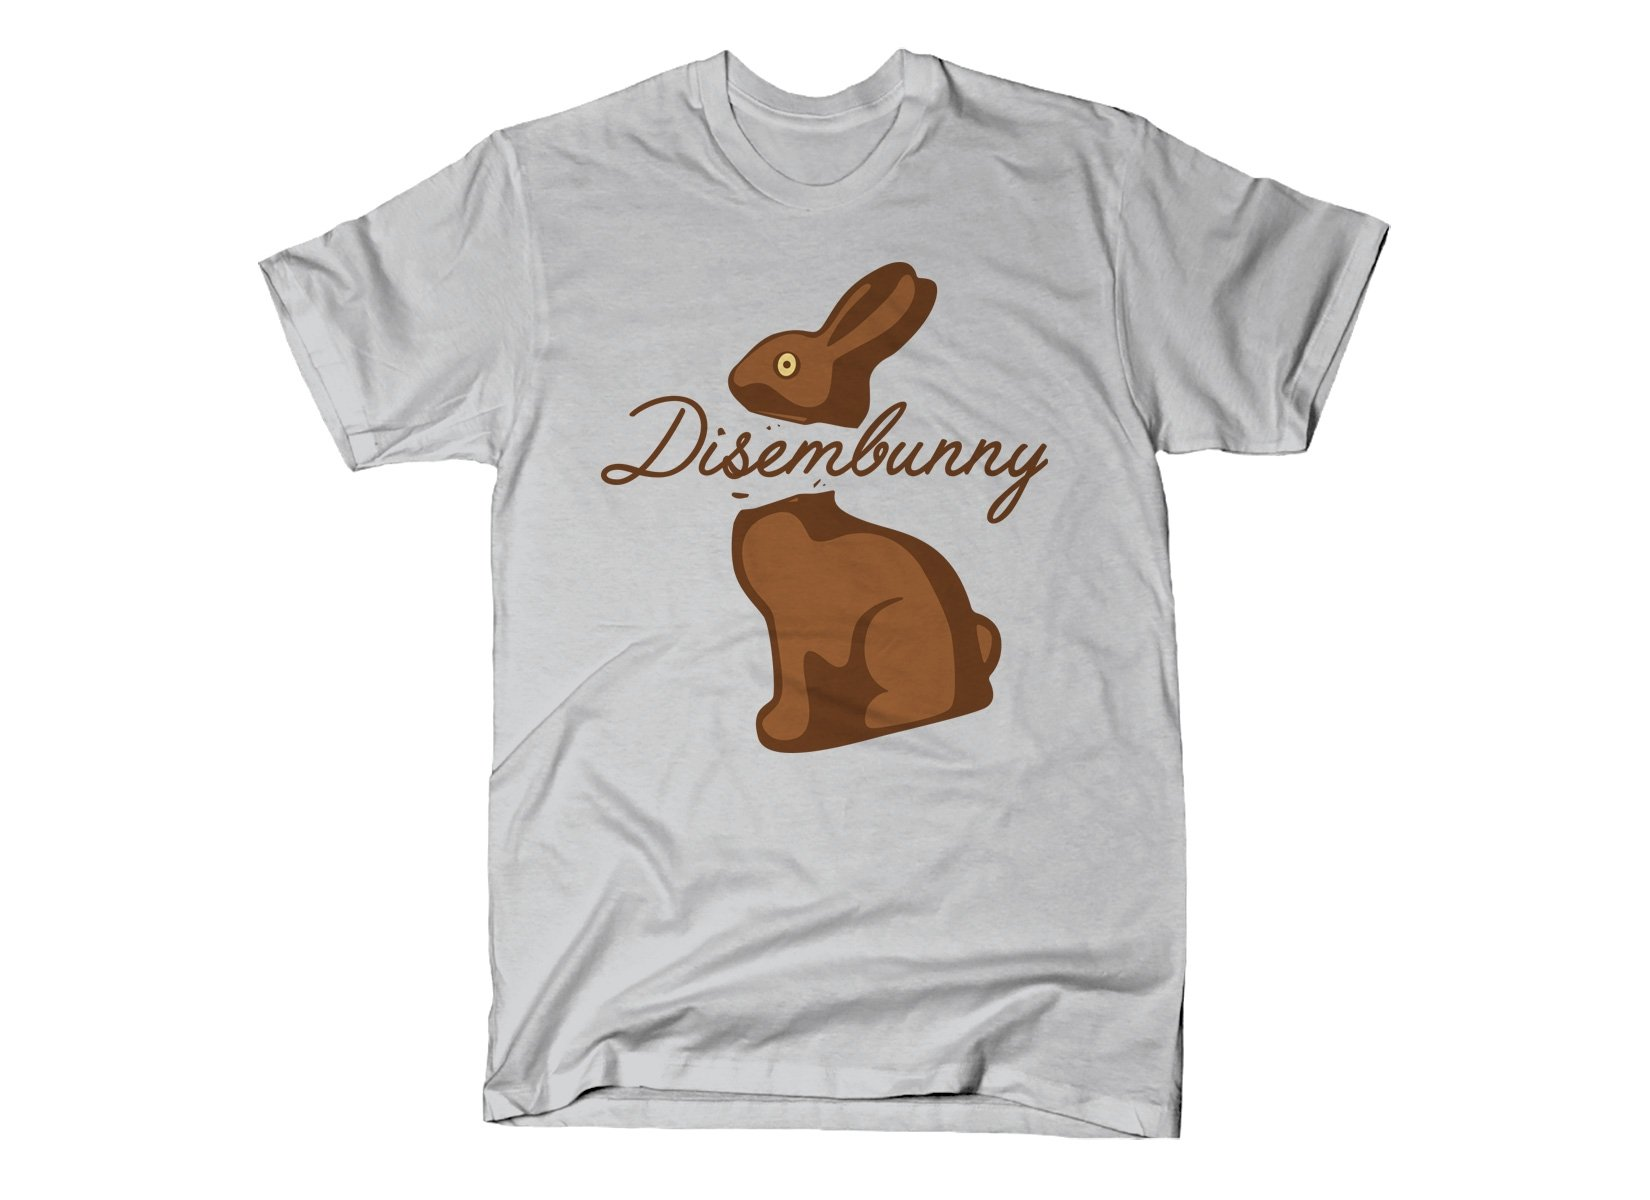 Disembunny on Mens T-Shirt